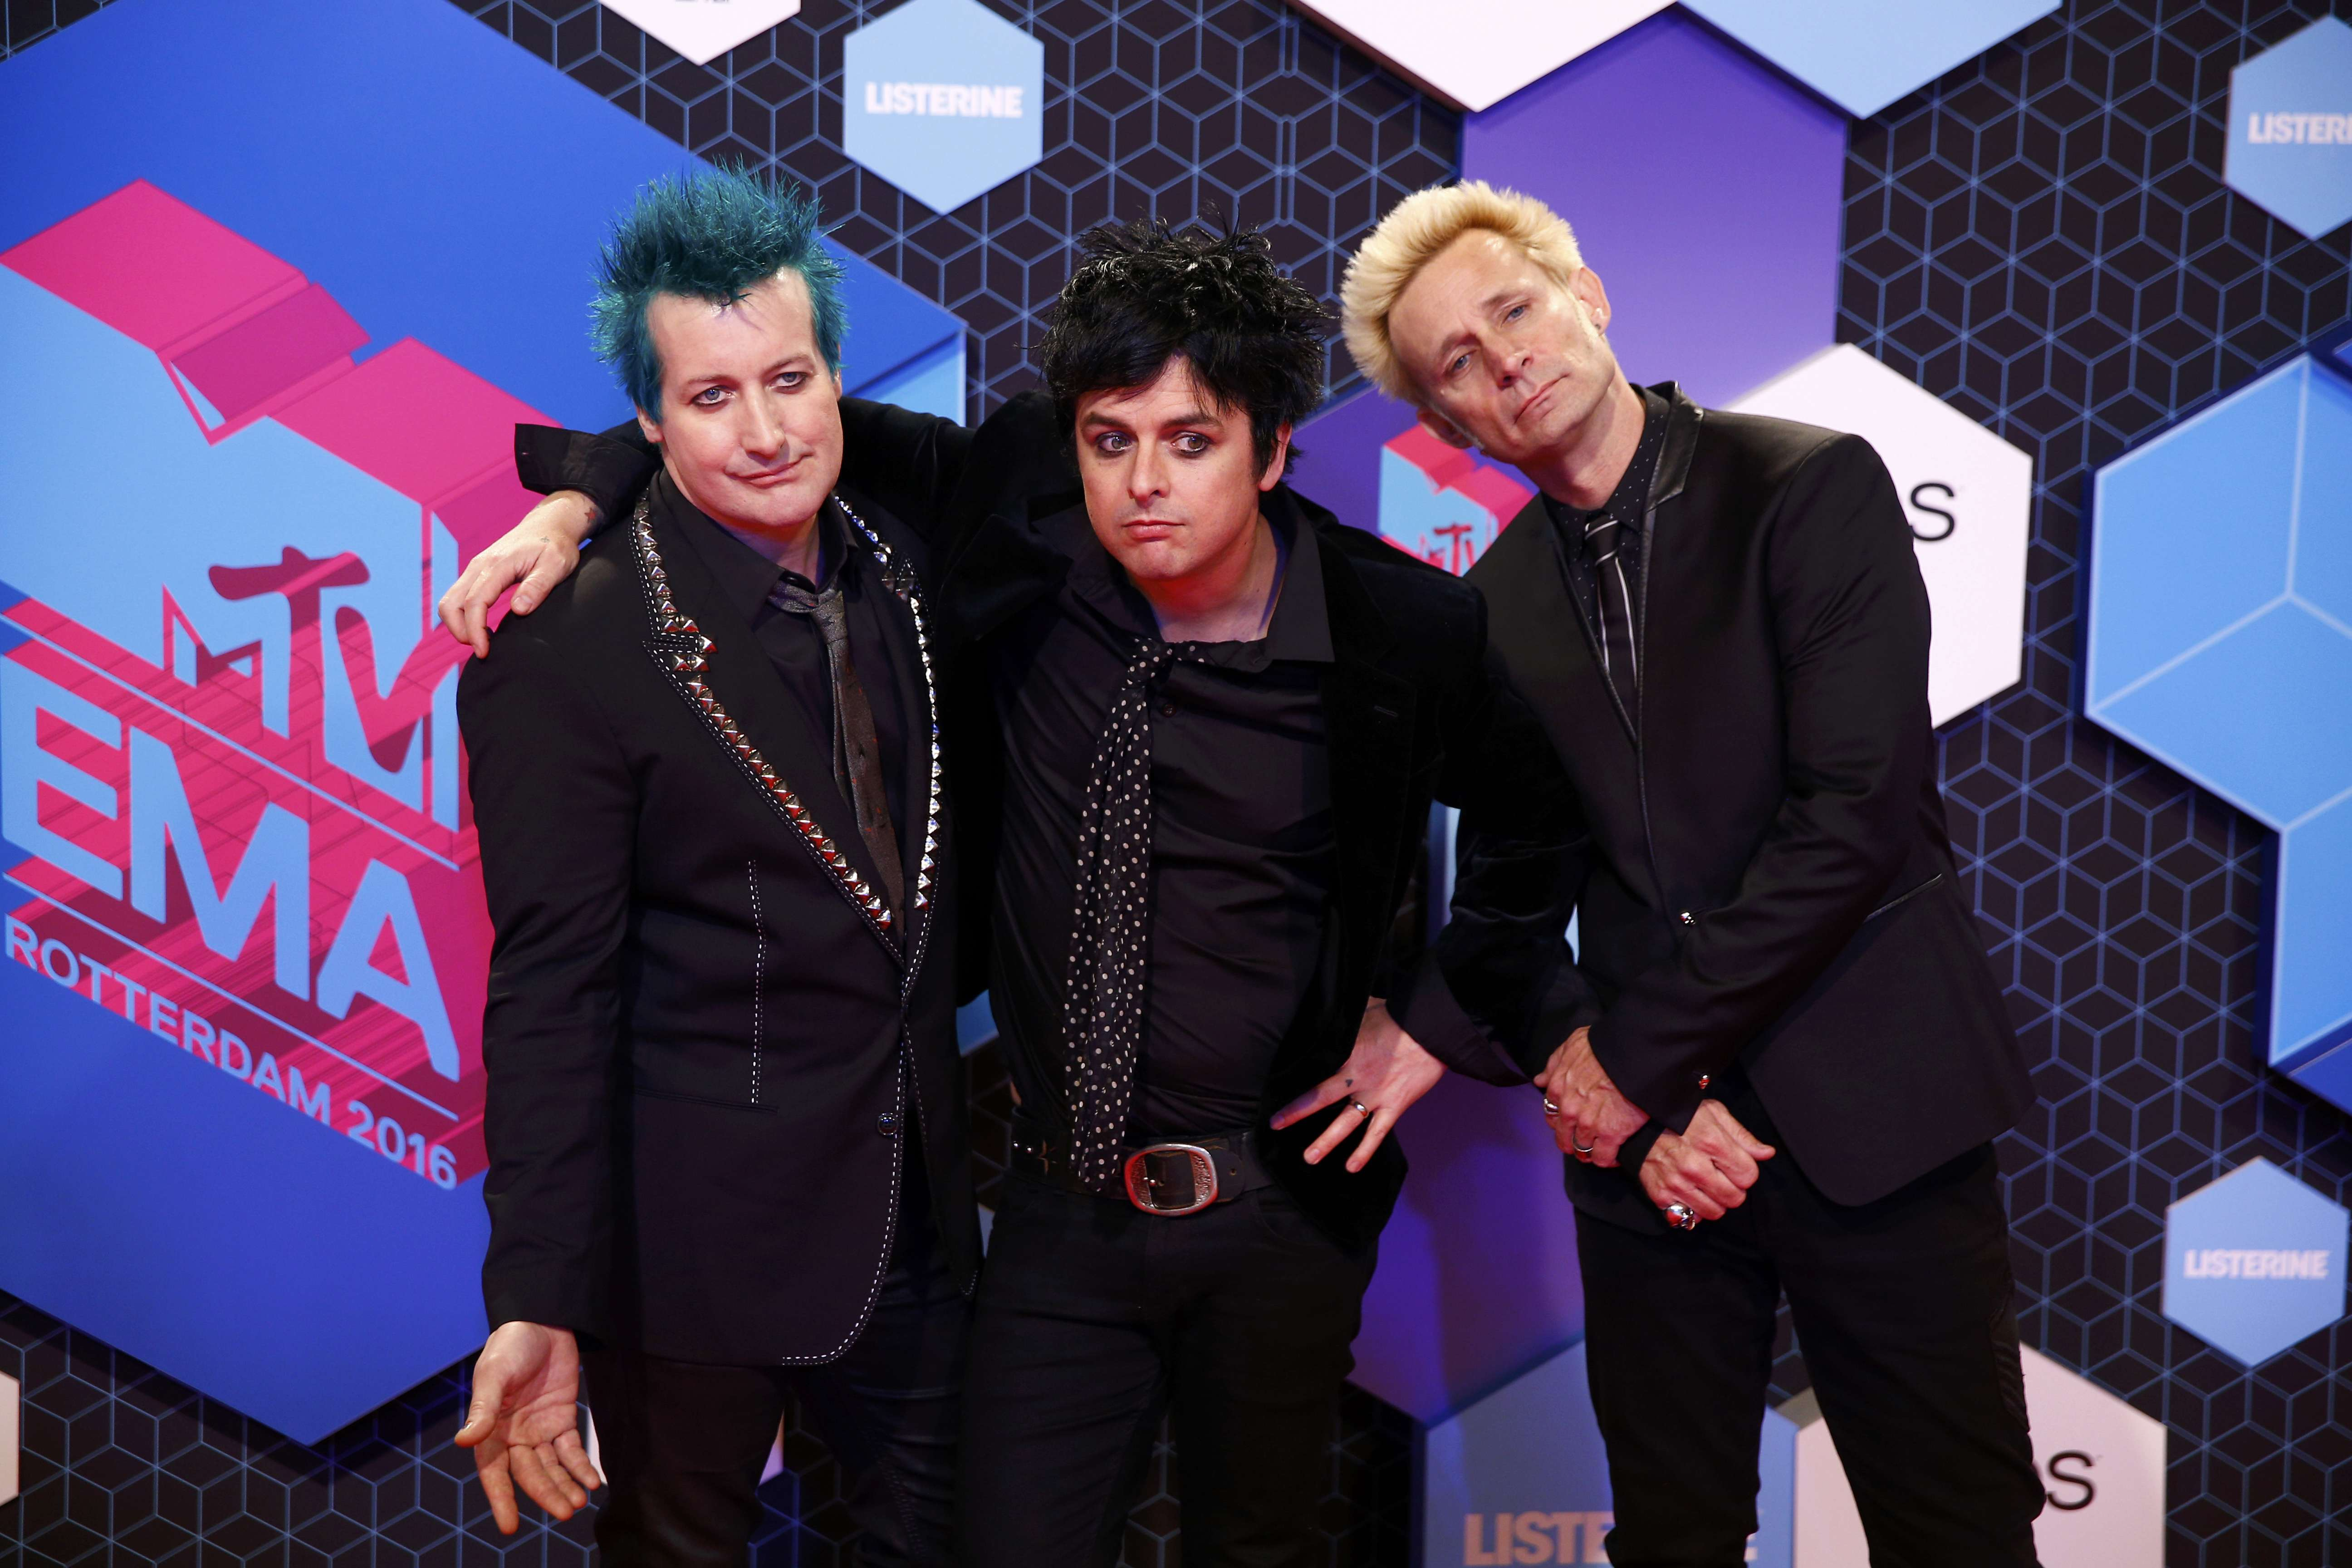 Rock band Green Day attends the 2016 MTV Europe Music Awards at the Ahoy Arena in Rotterdam, Netherlands, November 6, 2016.   REUTERS/Michael Kooren